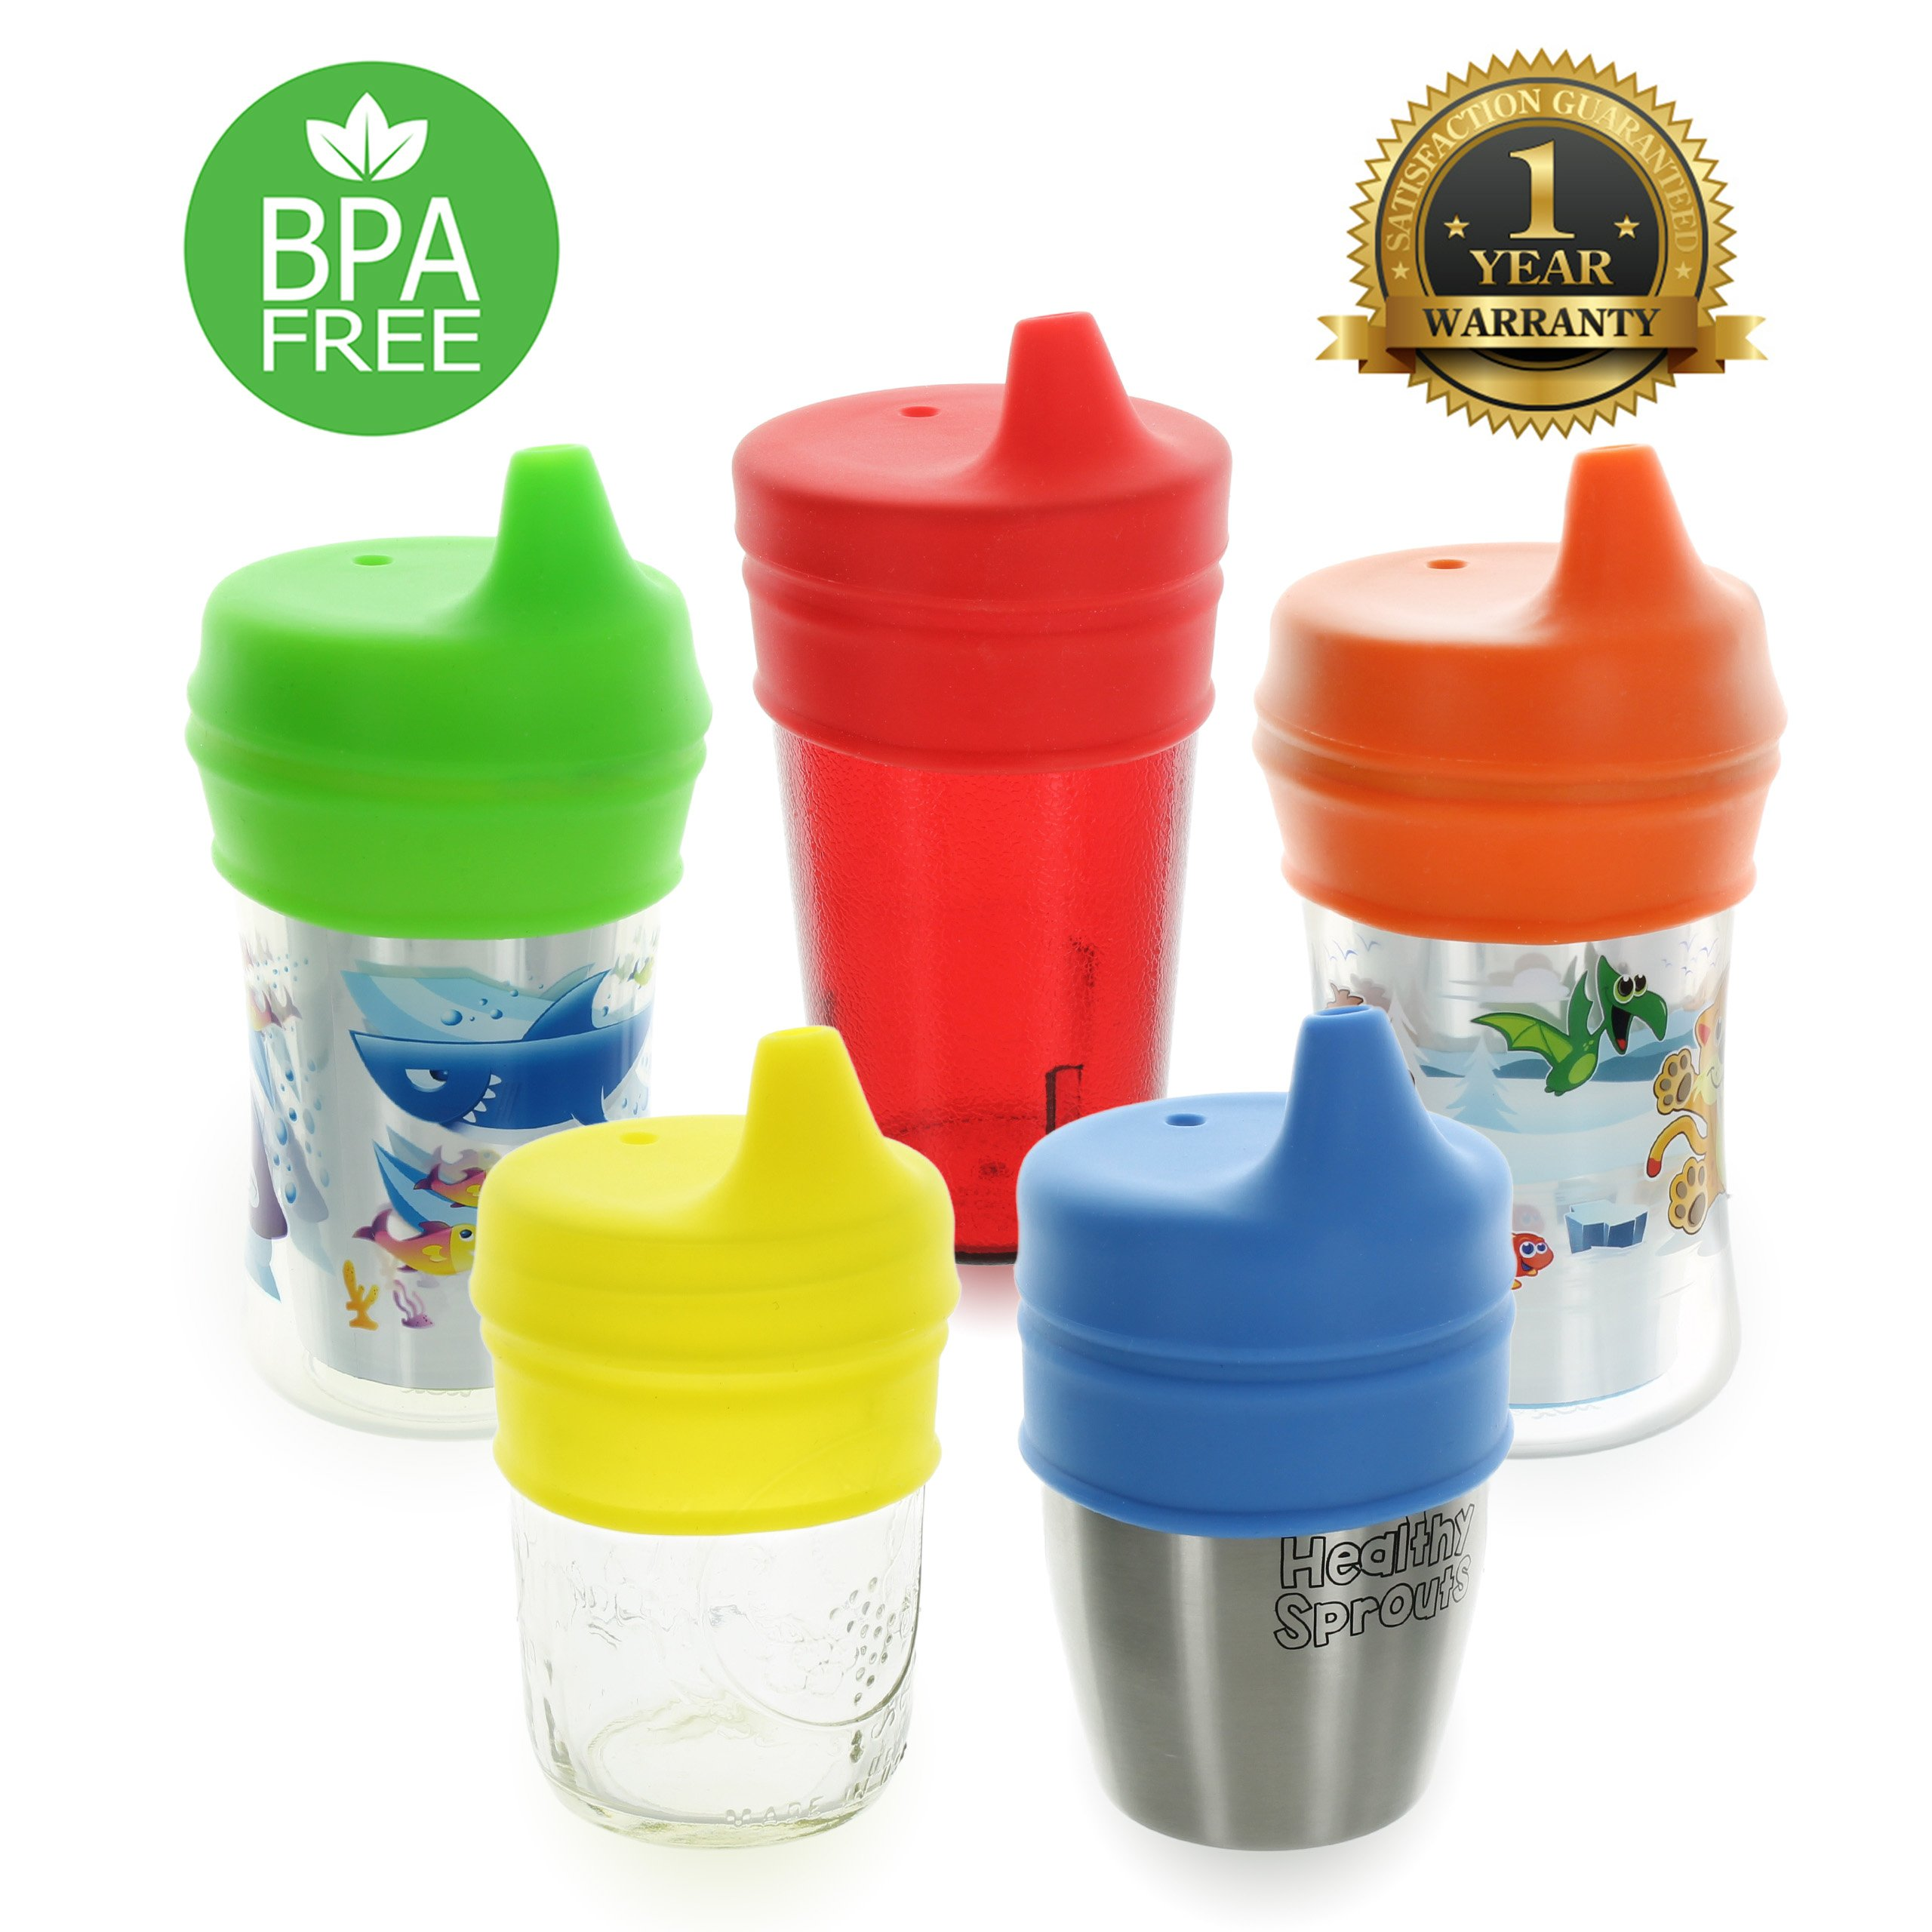 Healthy Sprouts Silicone Sippy Lids (5 Pack) - Lab Tested, Spill Proof, BPA Free, Universal Soft Spout Stretch Tops | Make Any Cup a Sippy Cup for Toddler, Baby, Infant (Red Yellow Blue) by Healthy Sprouts (Image #1)